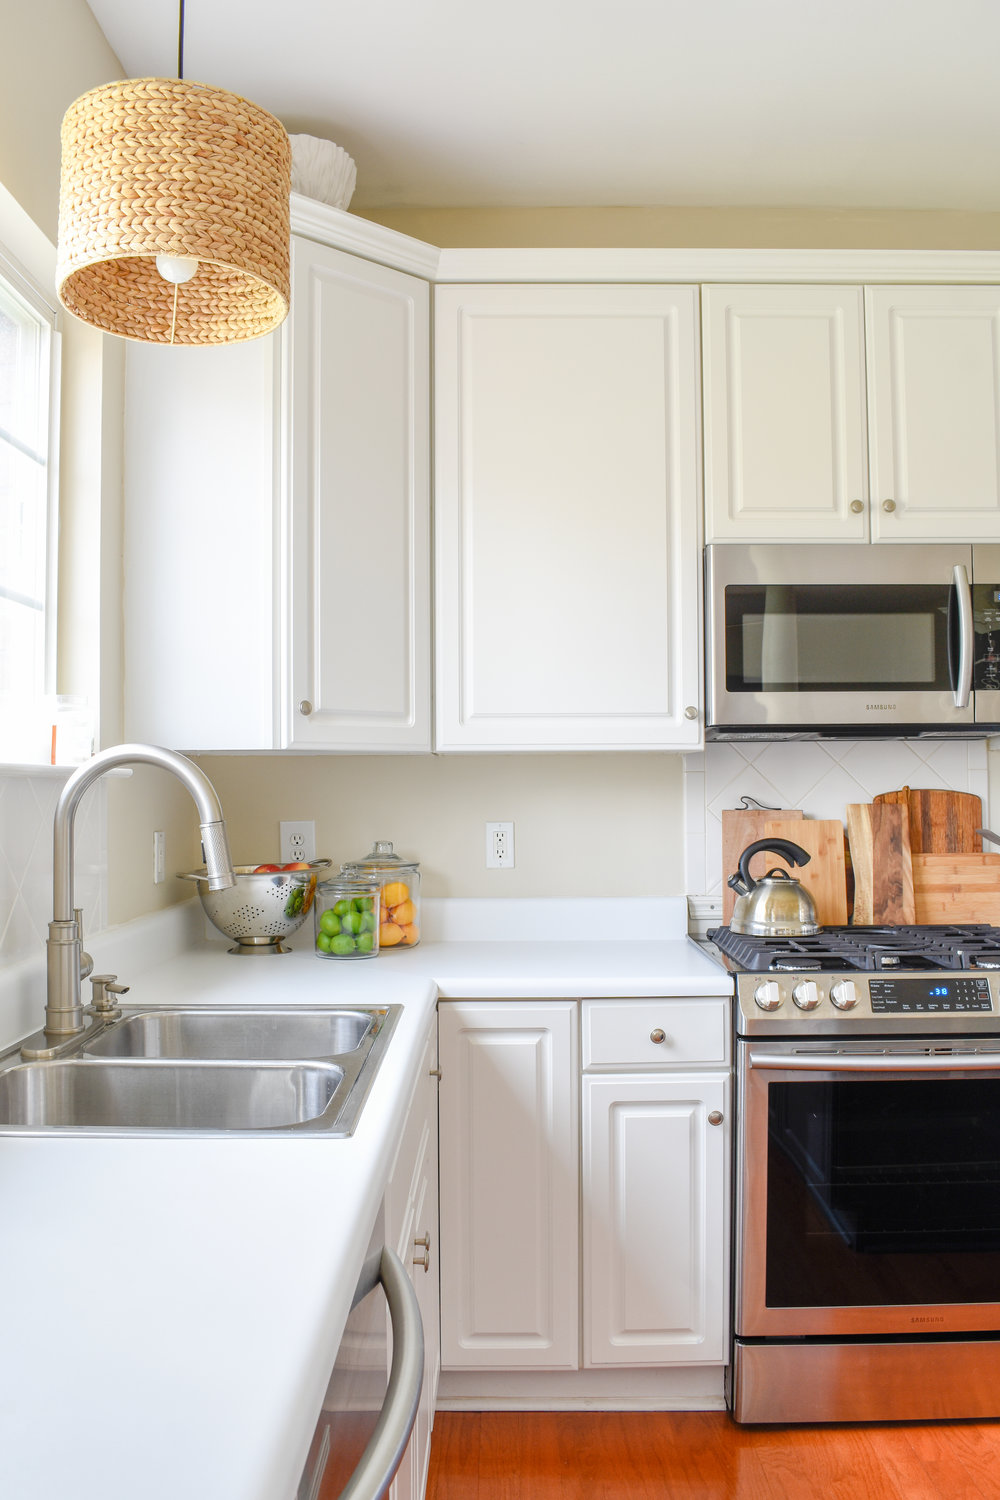 Spring Kitchen Updates: I've traded out the pine cones and candy canes for lemons and limes. I've also cleaned off the tops of our counters and cabinets, in anticipation of the new countertops and backsplash we'll be installing soon. #springcleaning